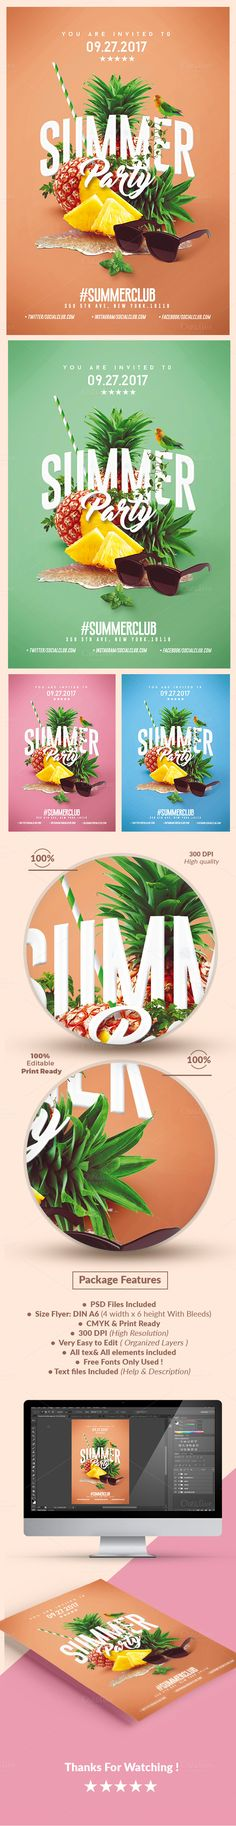 Summer Party Flyer / Poster | Flyer | Pinterest | Party flyer ...